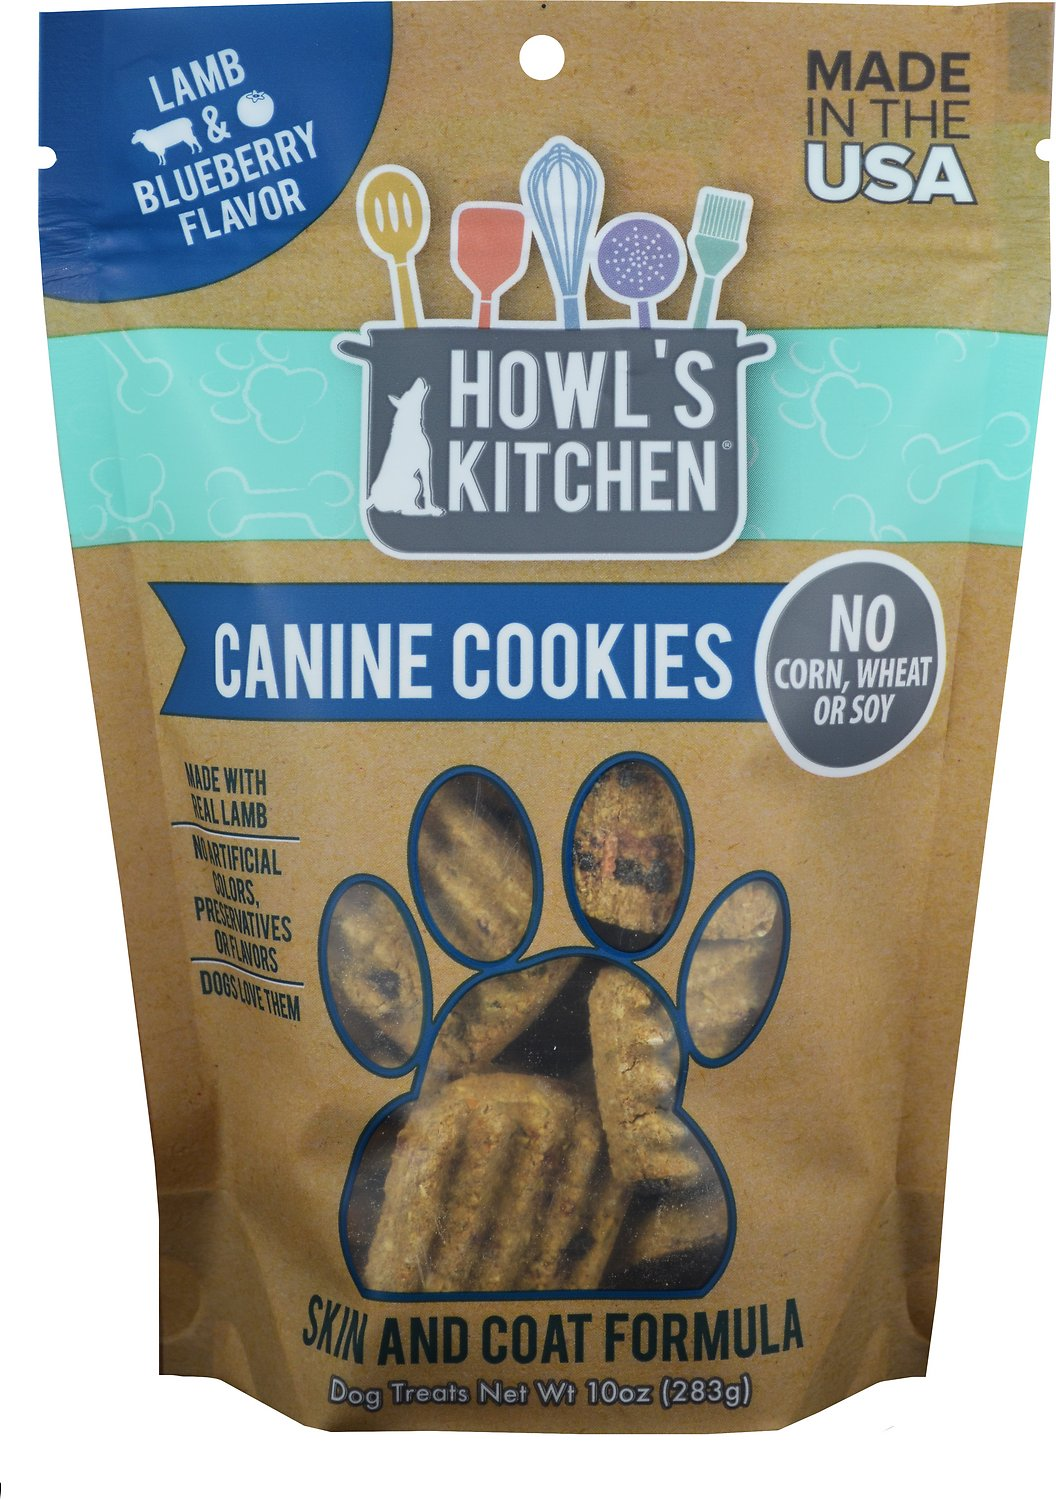 Howl's Kitchen Canine Cookies Lamb & Blueberry Flavor Dog Treats, 10-oz